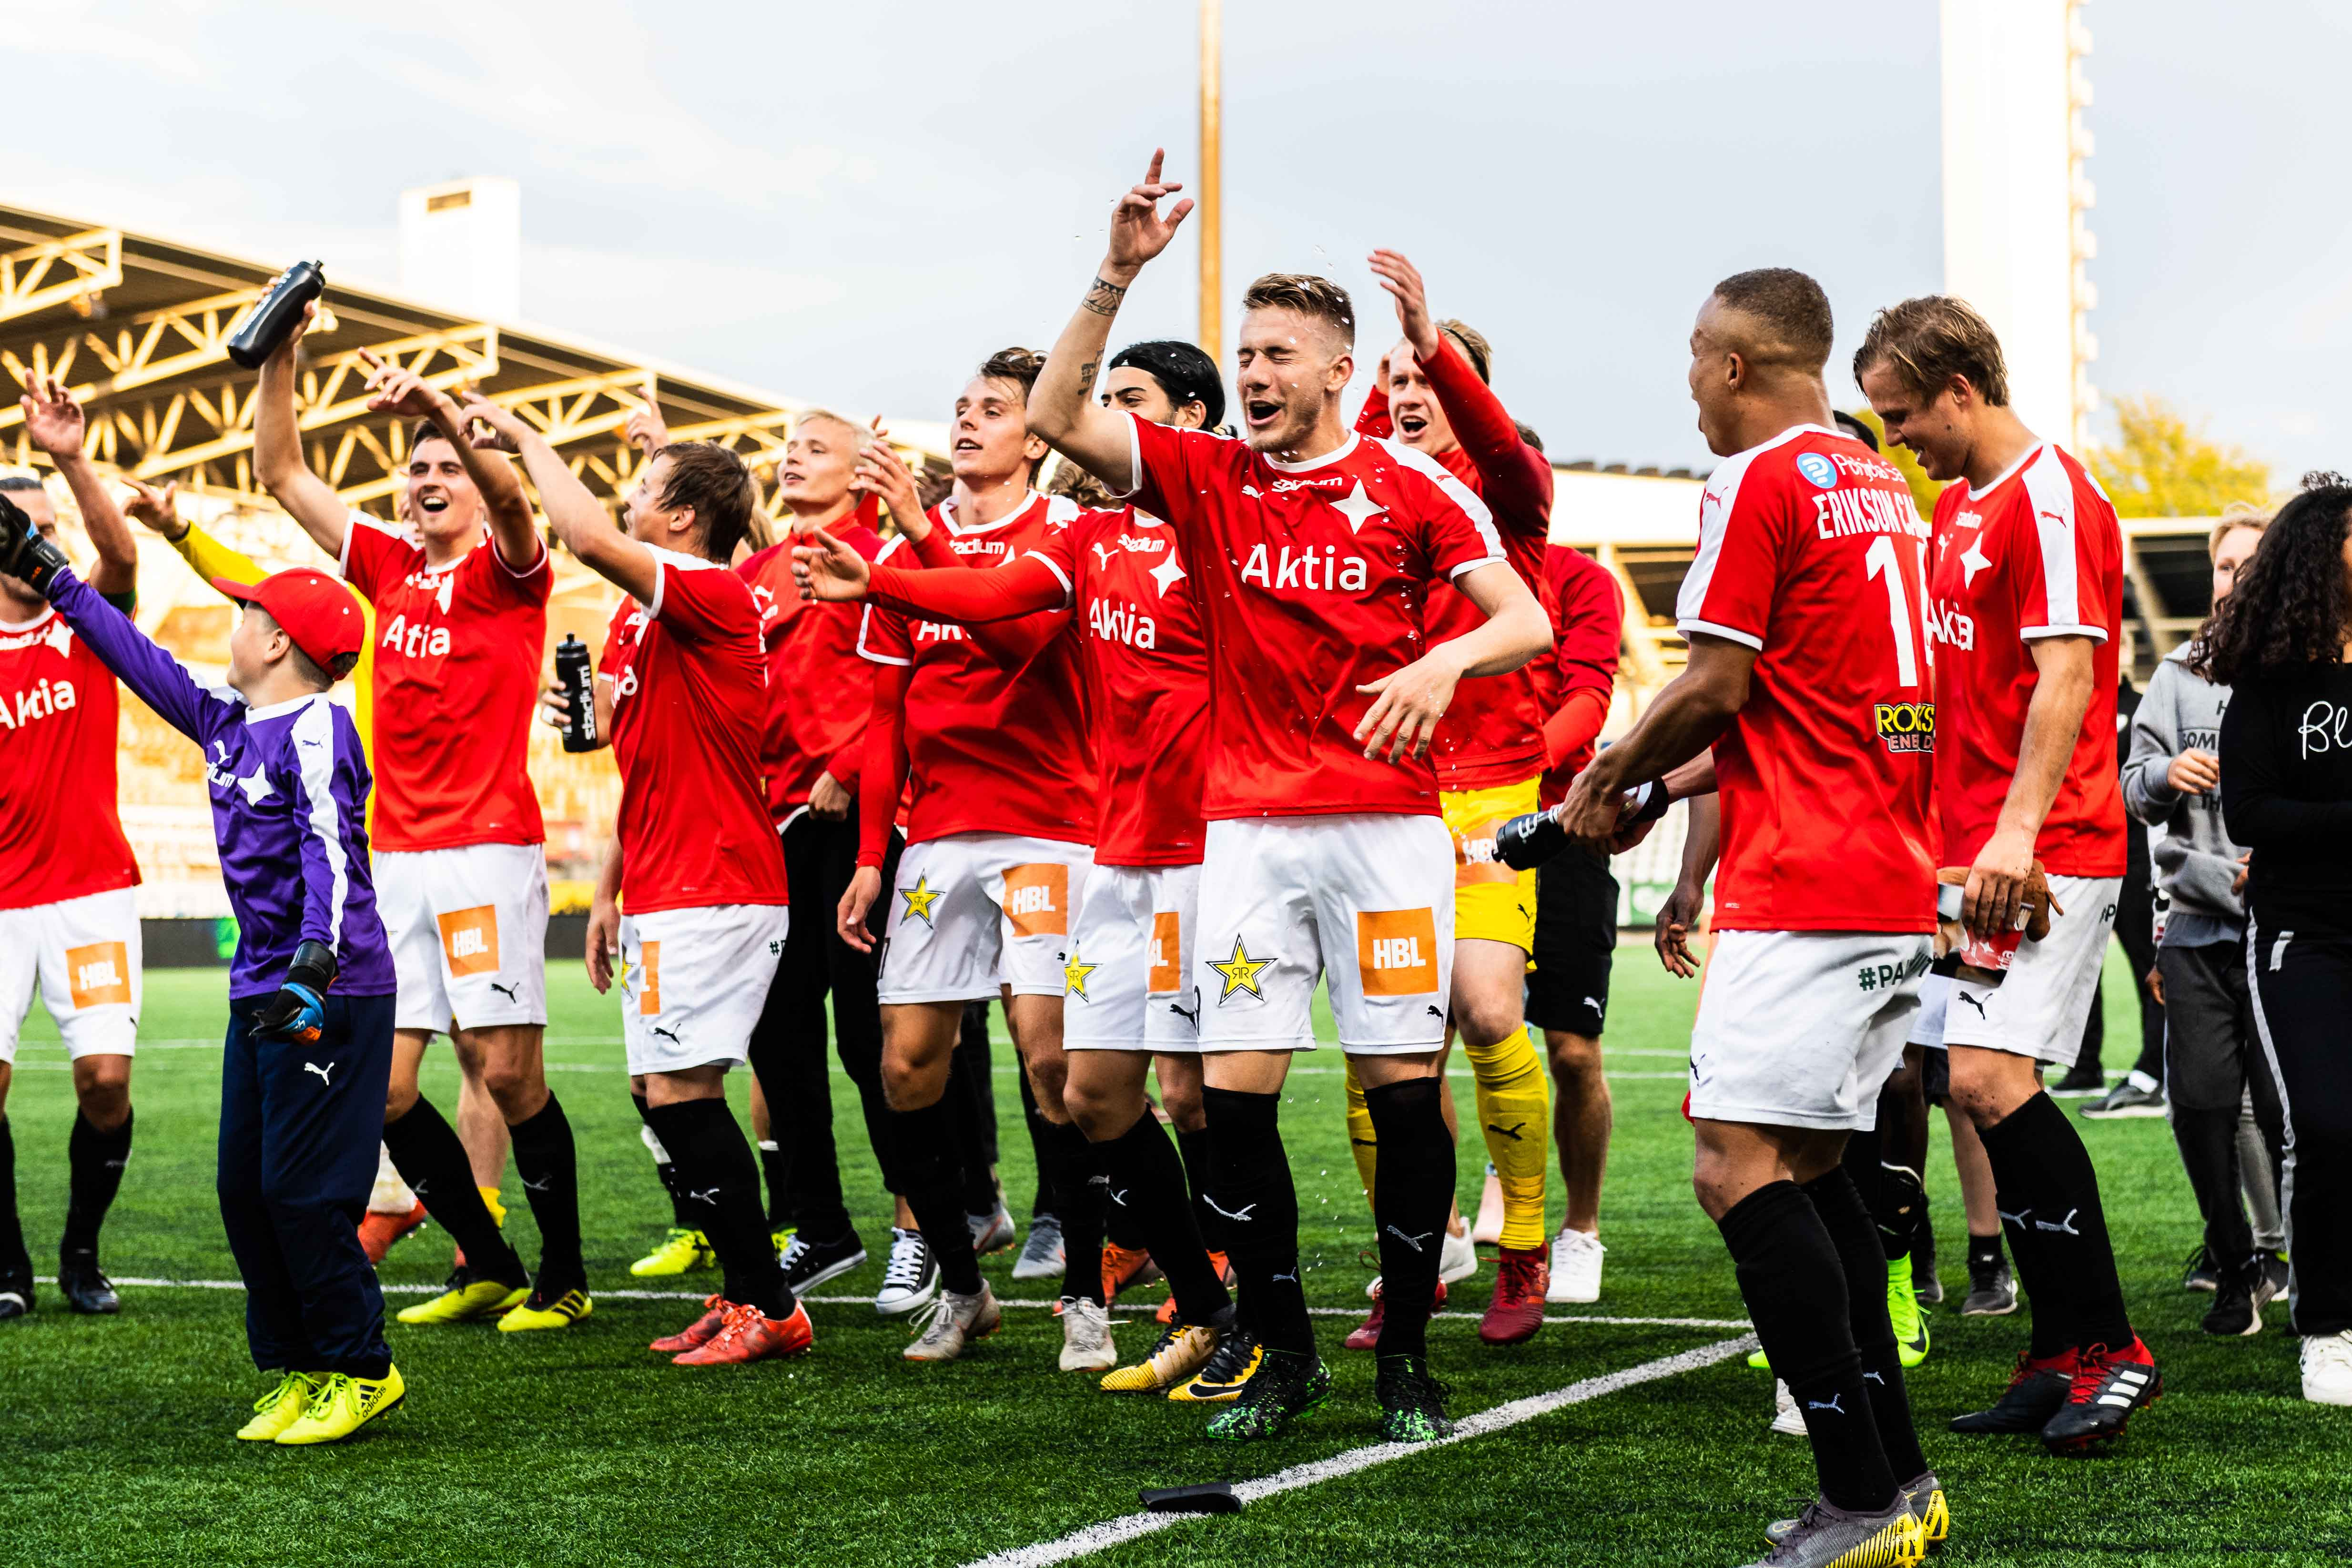 With the transferwindow shut, IFK focus on the rest of the season